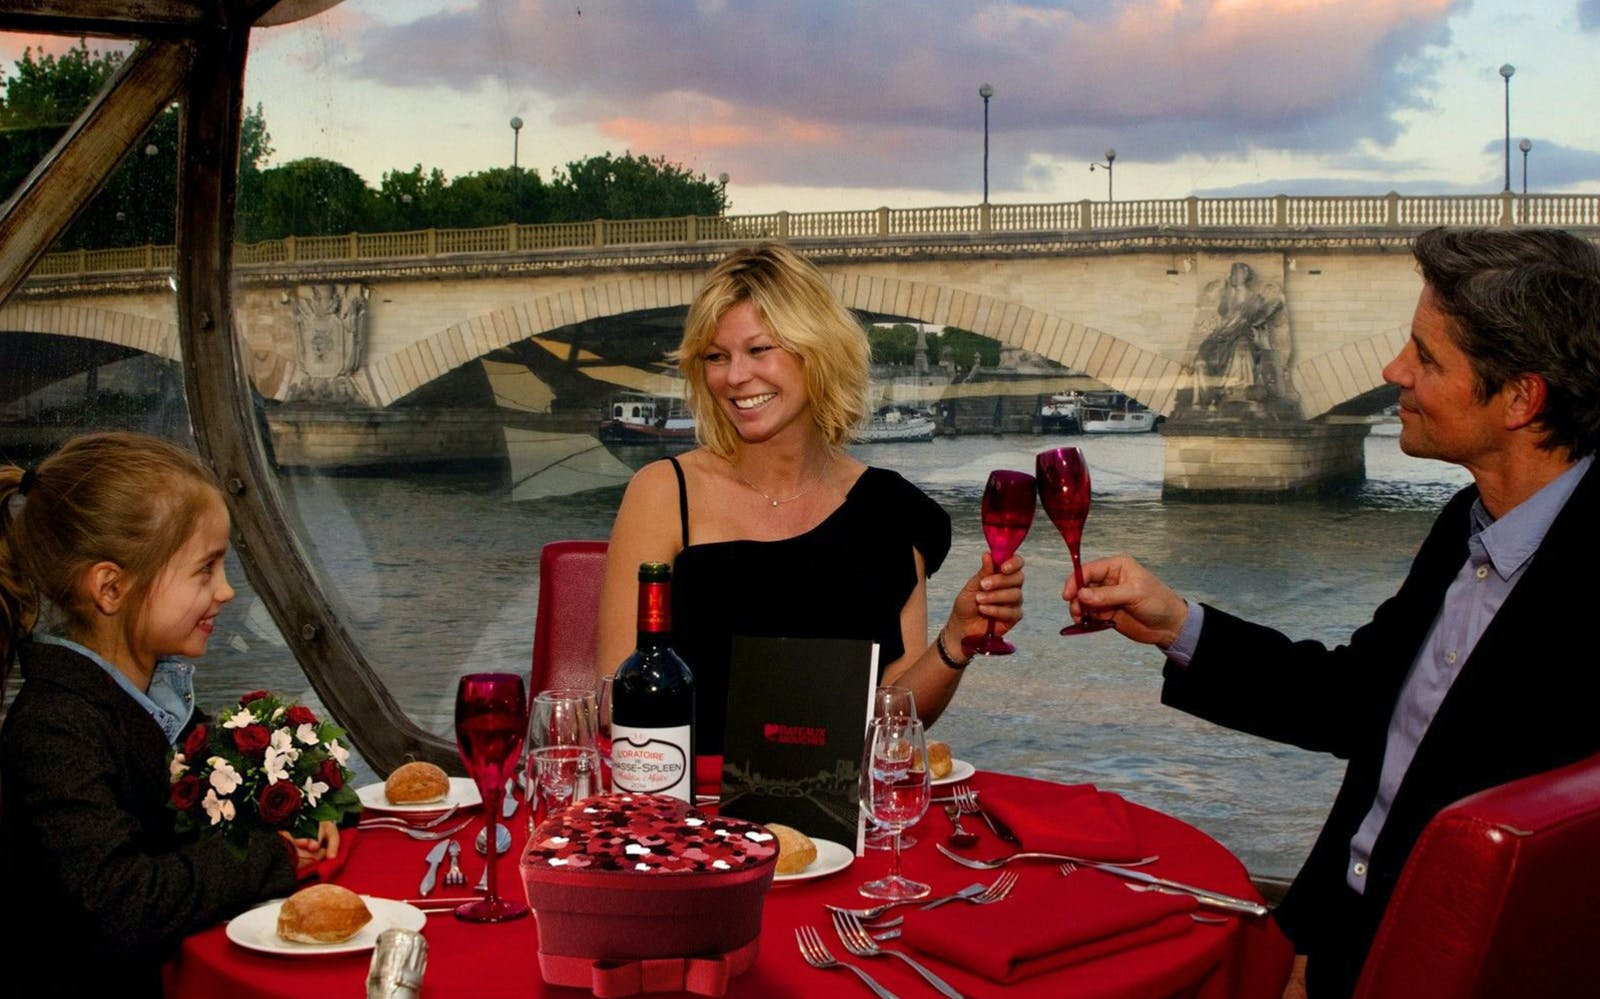 bateaux mouches late evening seine river dinner cruise with live music-3